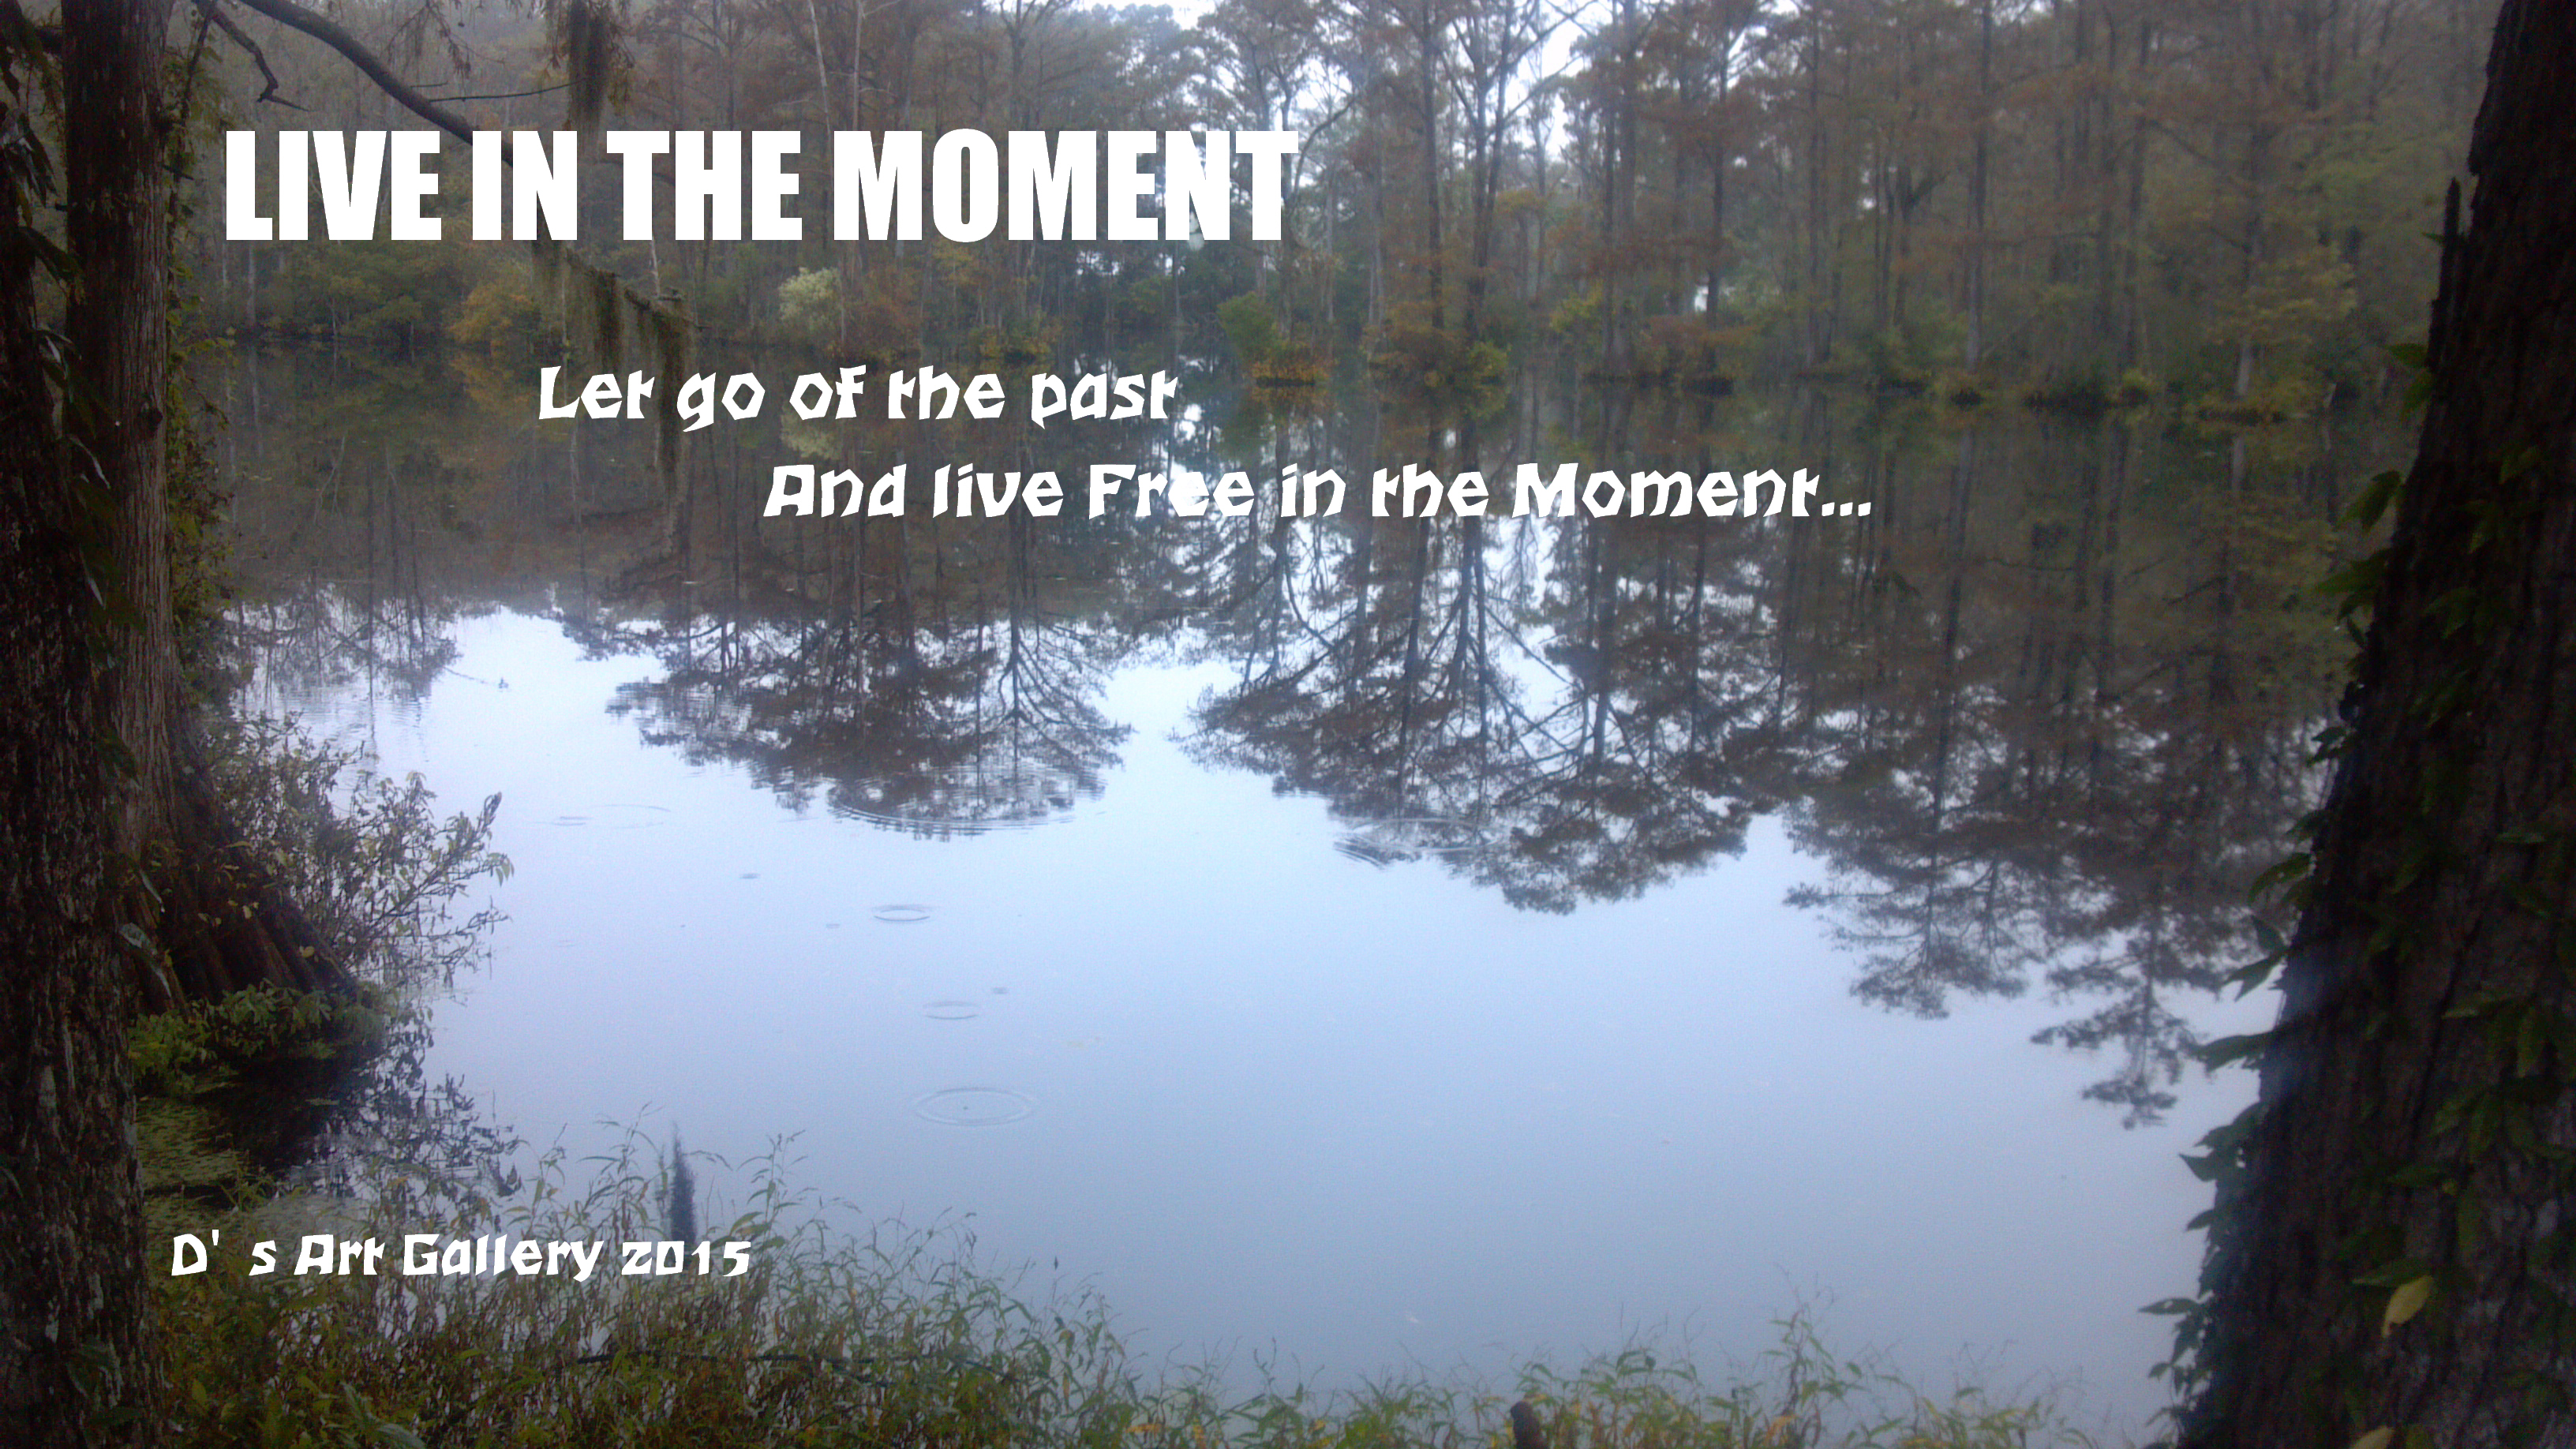 LIVE IN THE MOMENT (Photo by Pastor Davis)